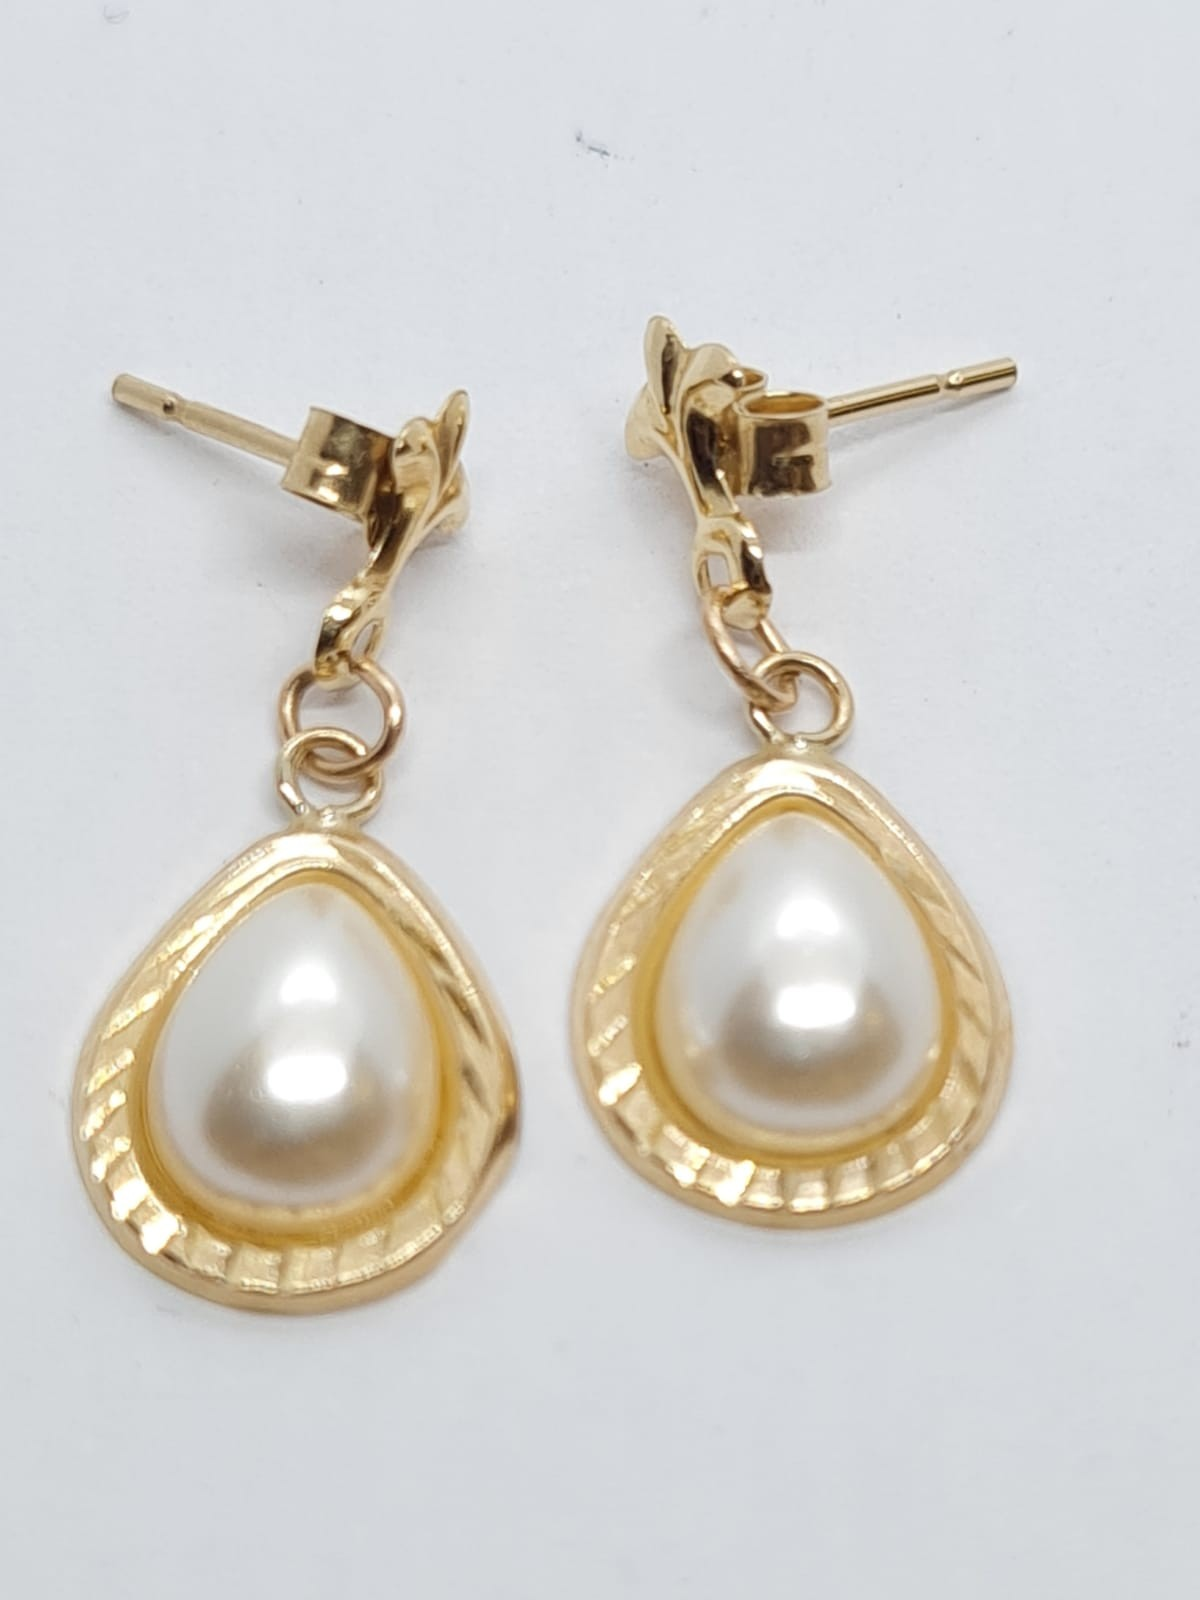 9ct Gold and pearl EARRINGS. - Image 2 of 2